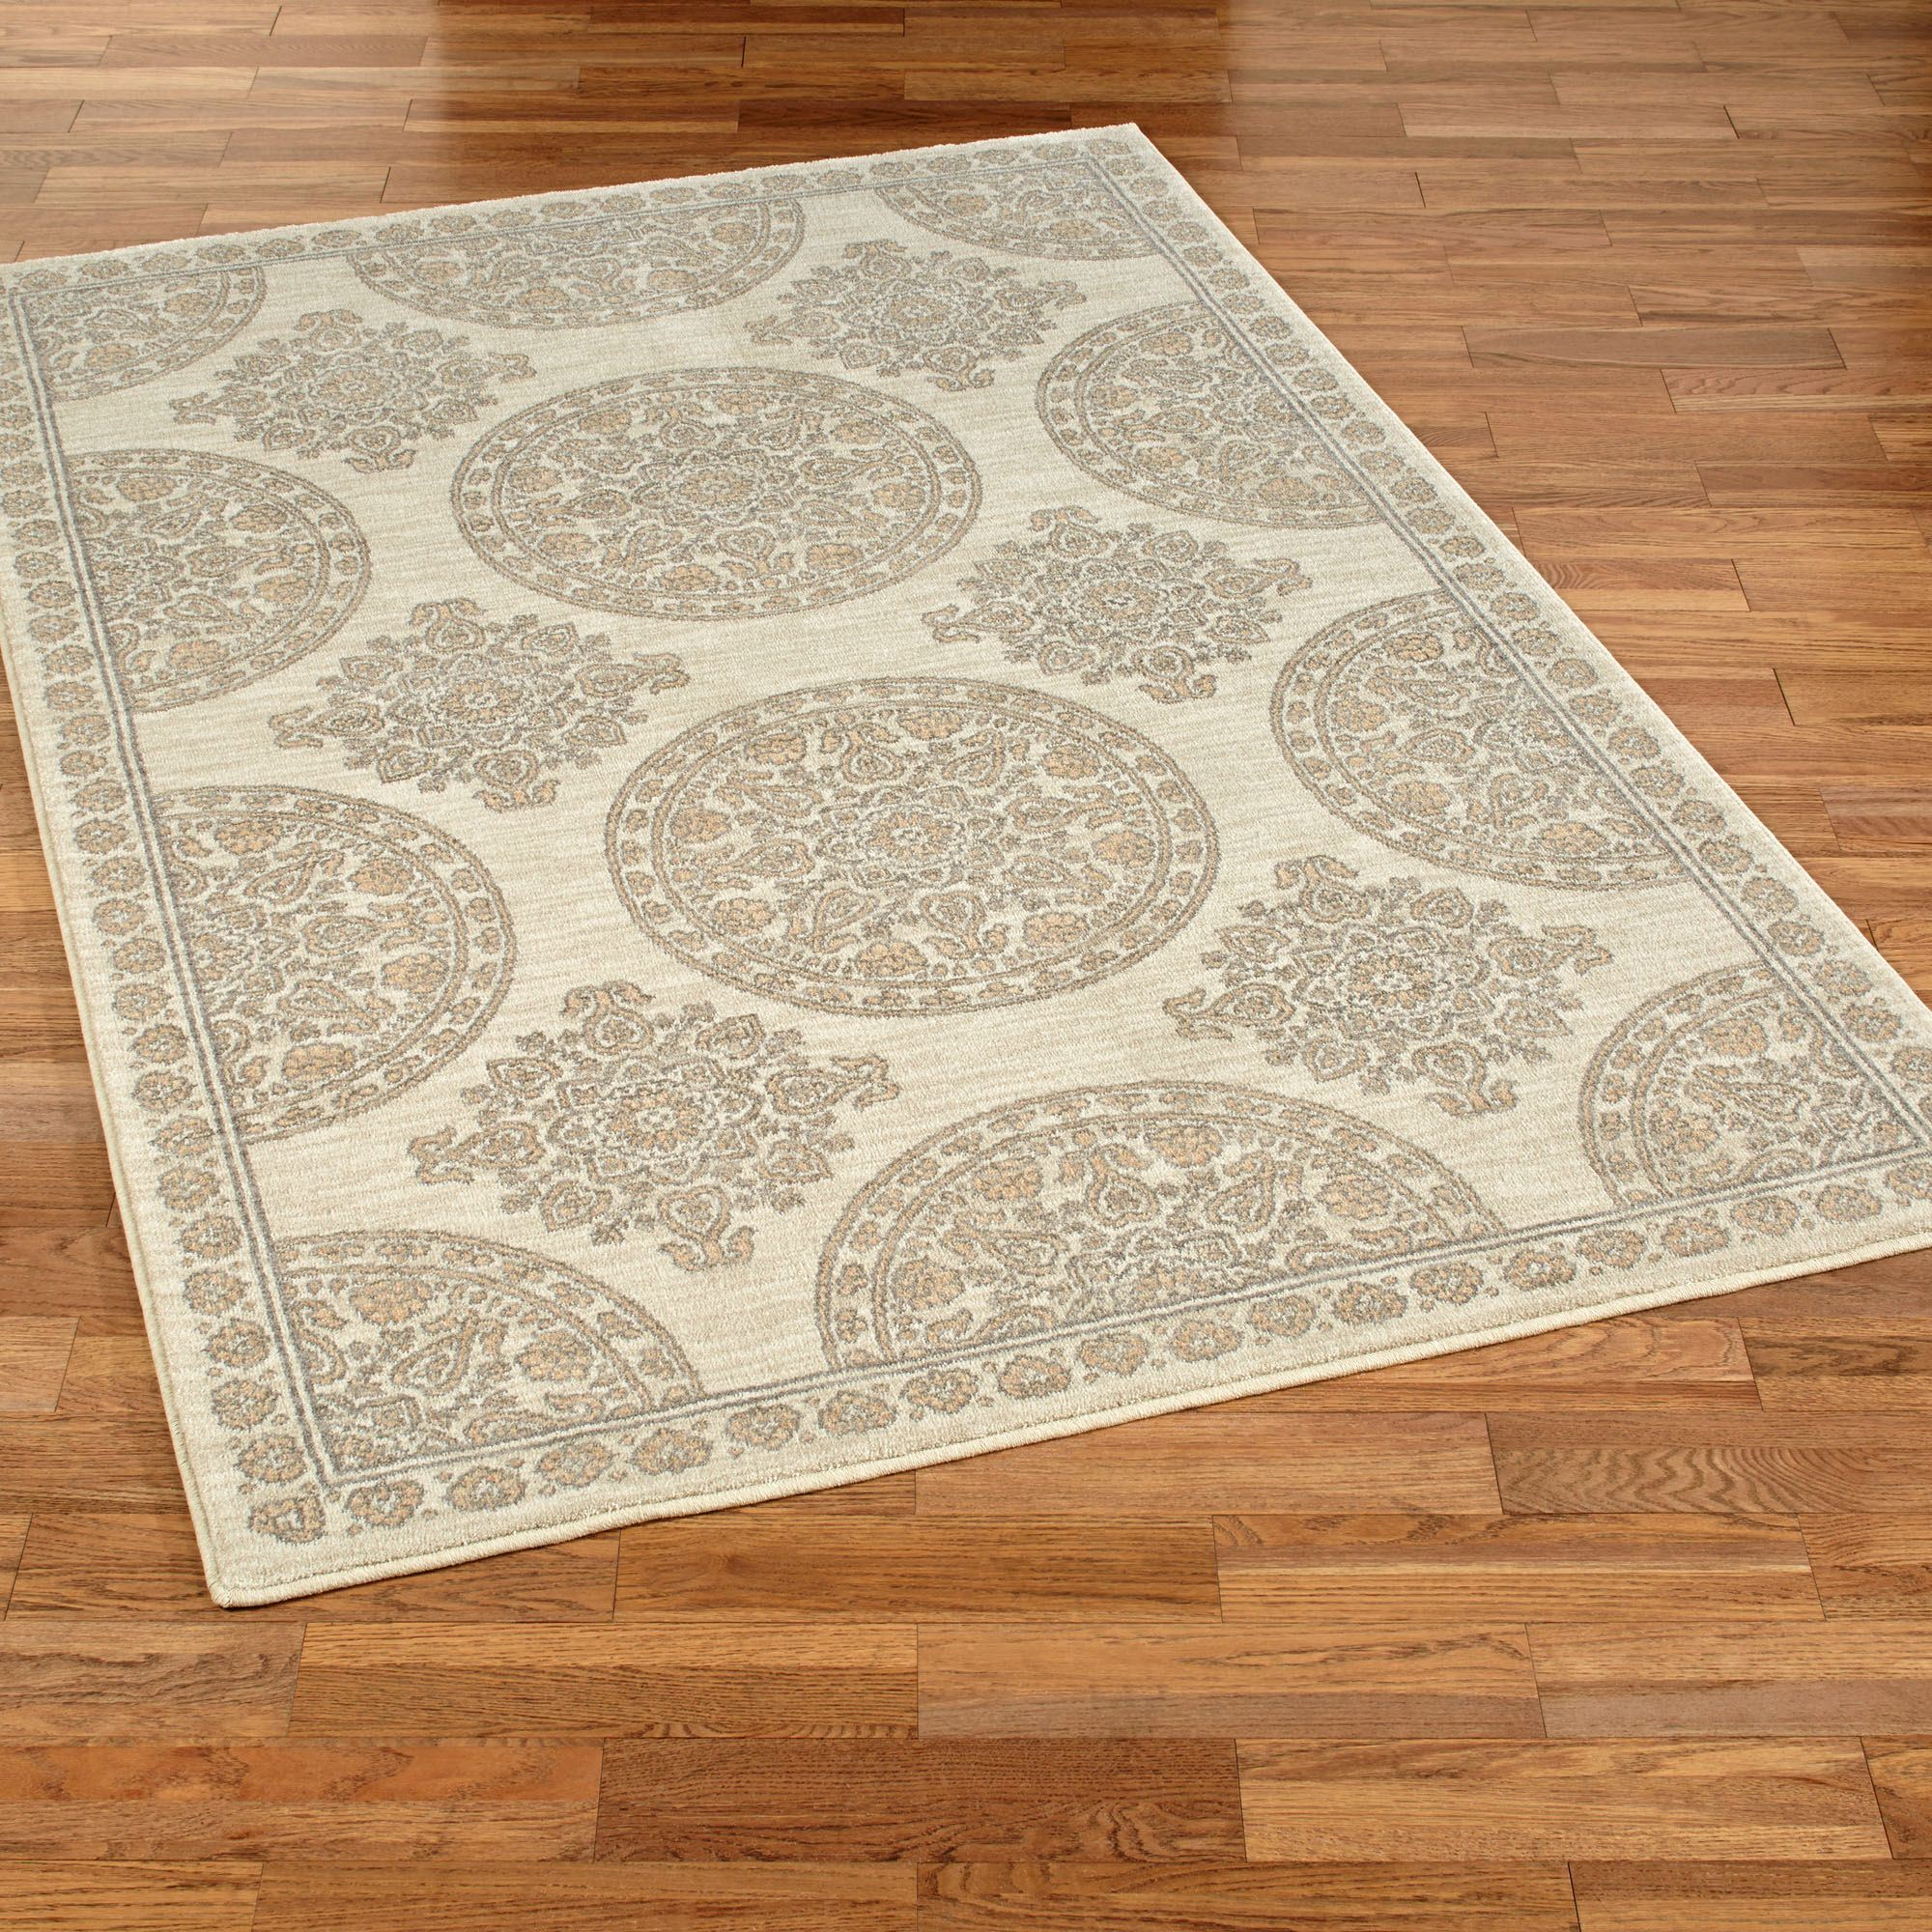 mohawk olympia medallion stain resistant area rugs